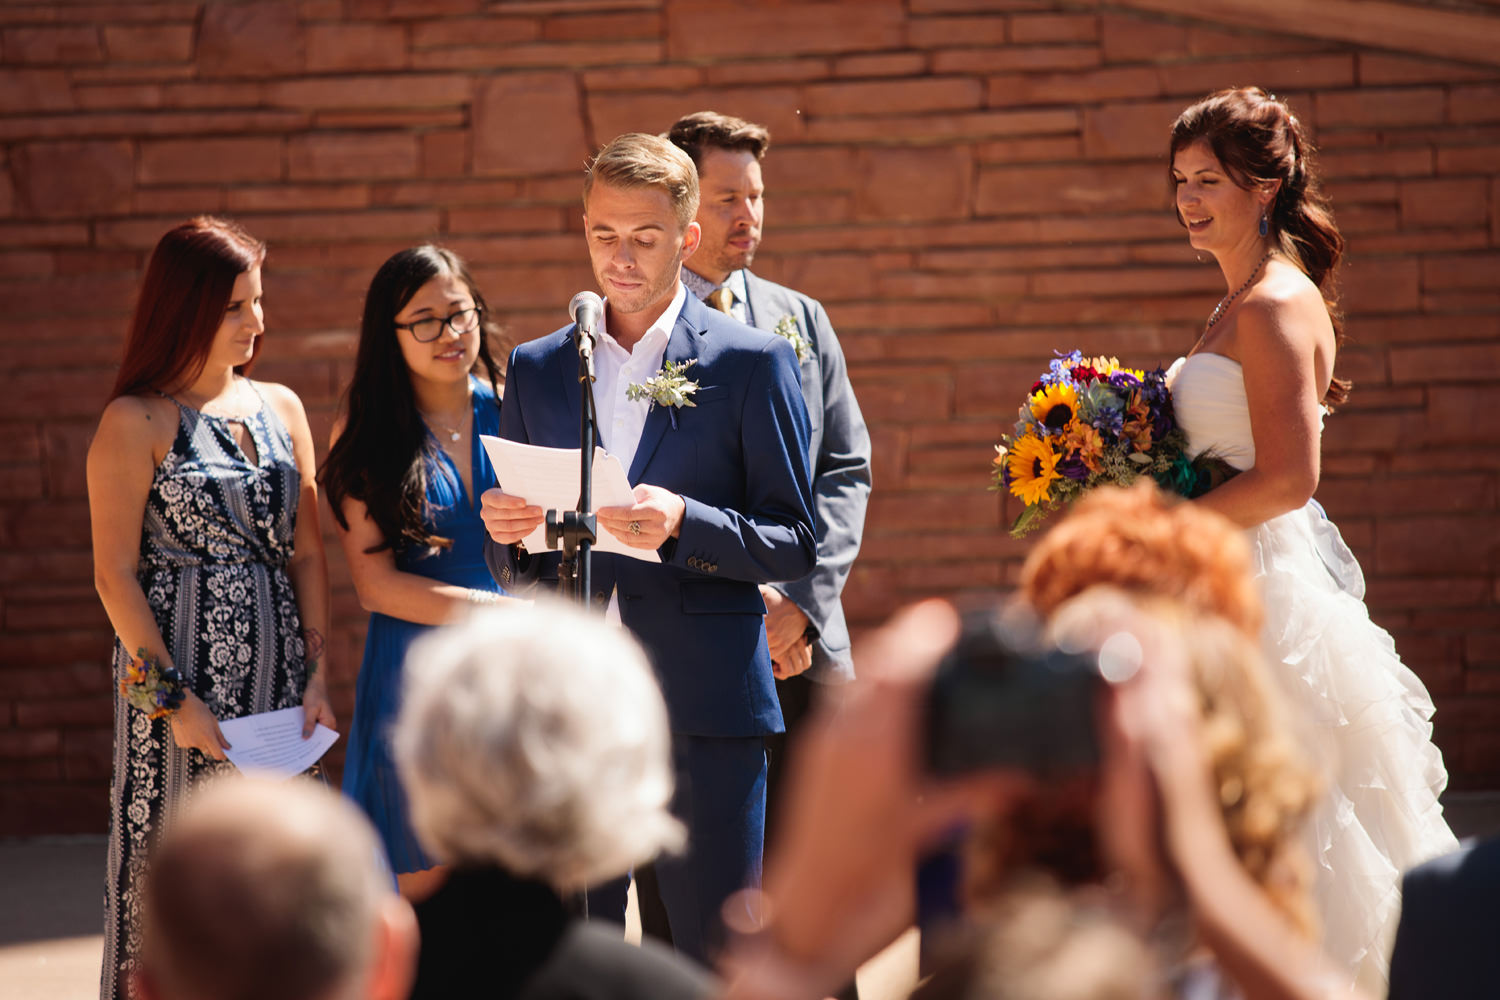 red-rocks-wedding-photographer-denver-tomKphoto-054.jpg